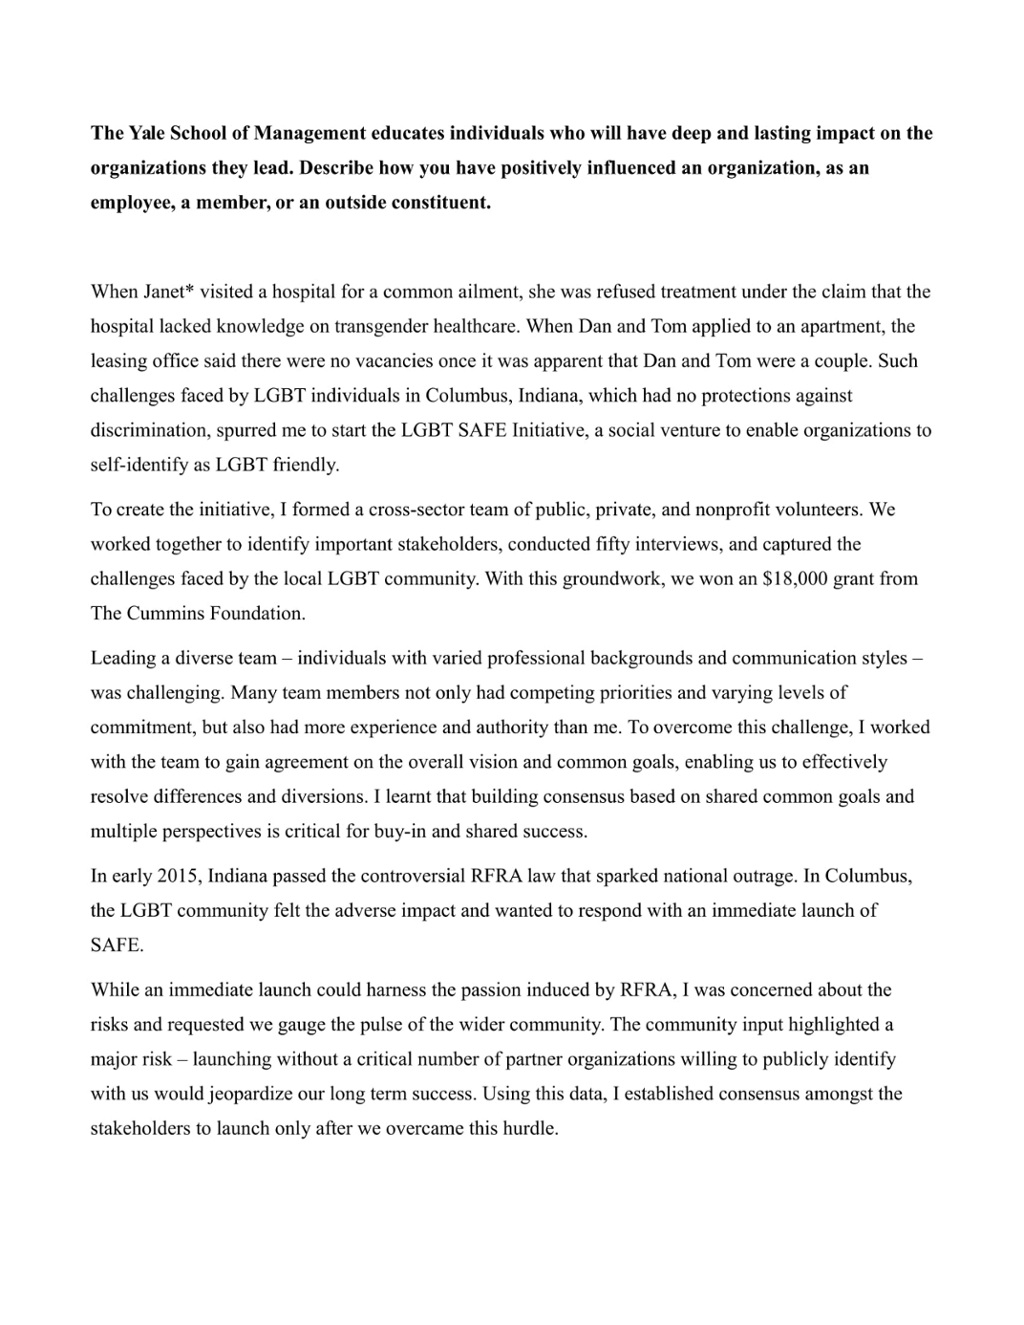 Essay Term Paper  Mba Admissions Essays That Worked  Applying To Business School  Us News Example Thesis Statements For Essays also Thesis Statement For Argumentative Essay  Mba Admissions Essays That Worked  Applying To Business School  Example Thesis Statement Essay